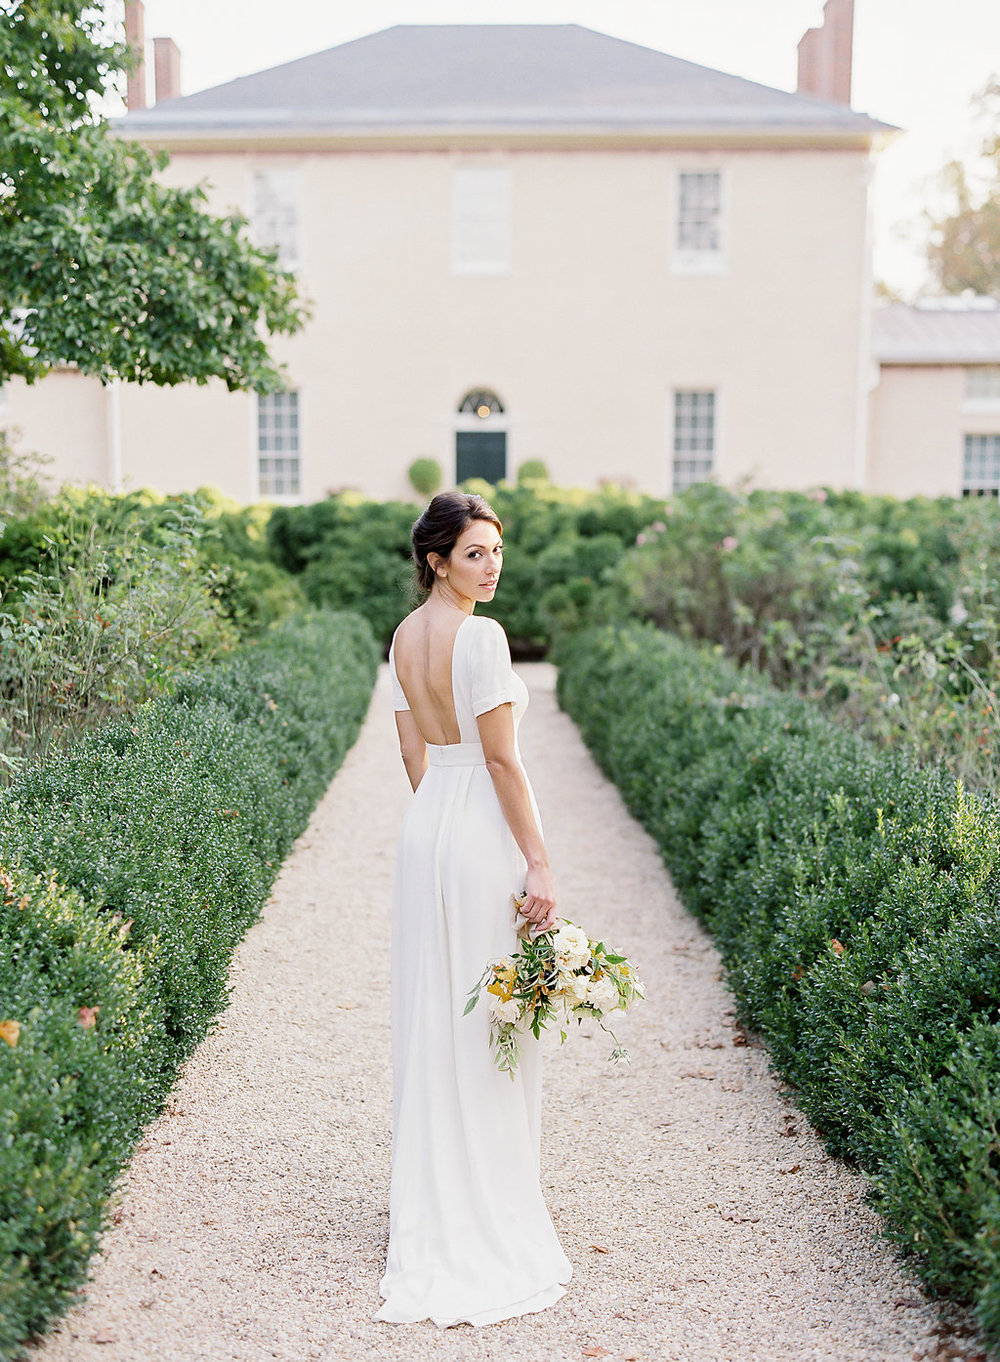 Fine art film photographer photography wedding engagement washington DC georgetown virginia modern bride destination inspiration tuscan inspired minimal classic timeless california ny backless dress